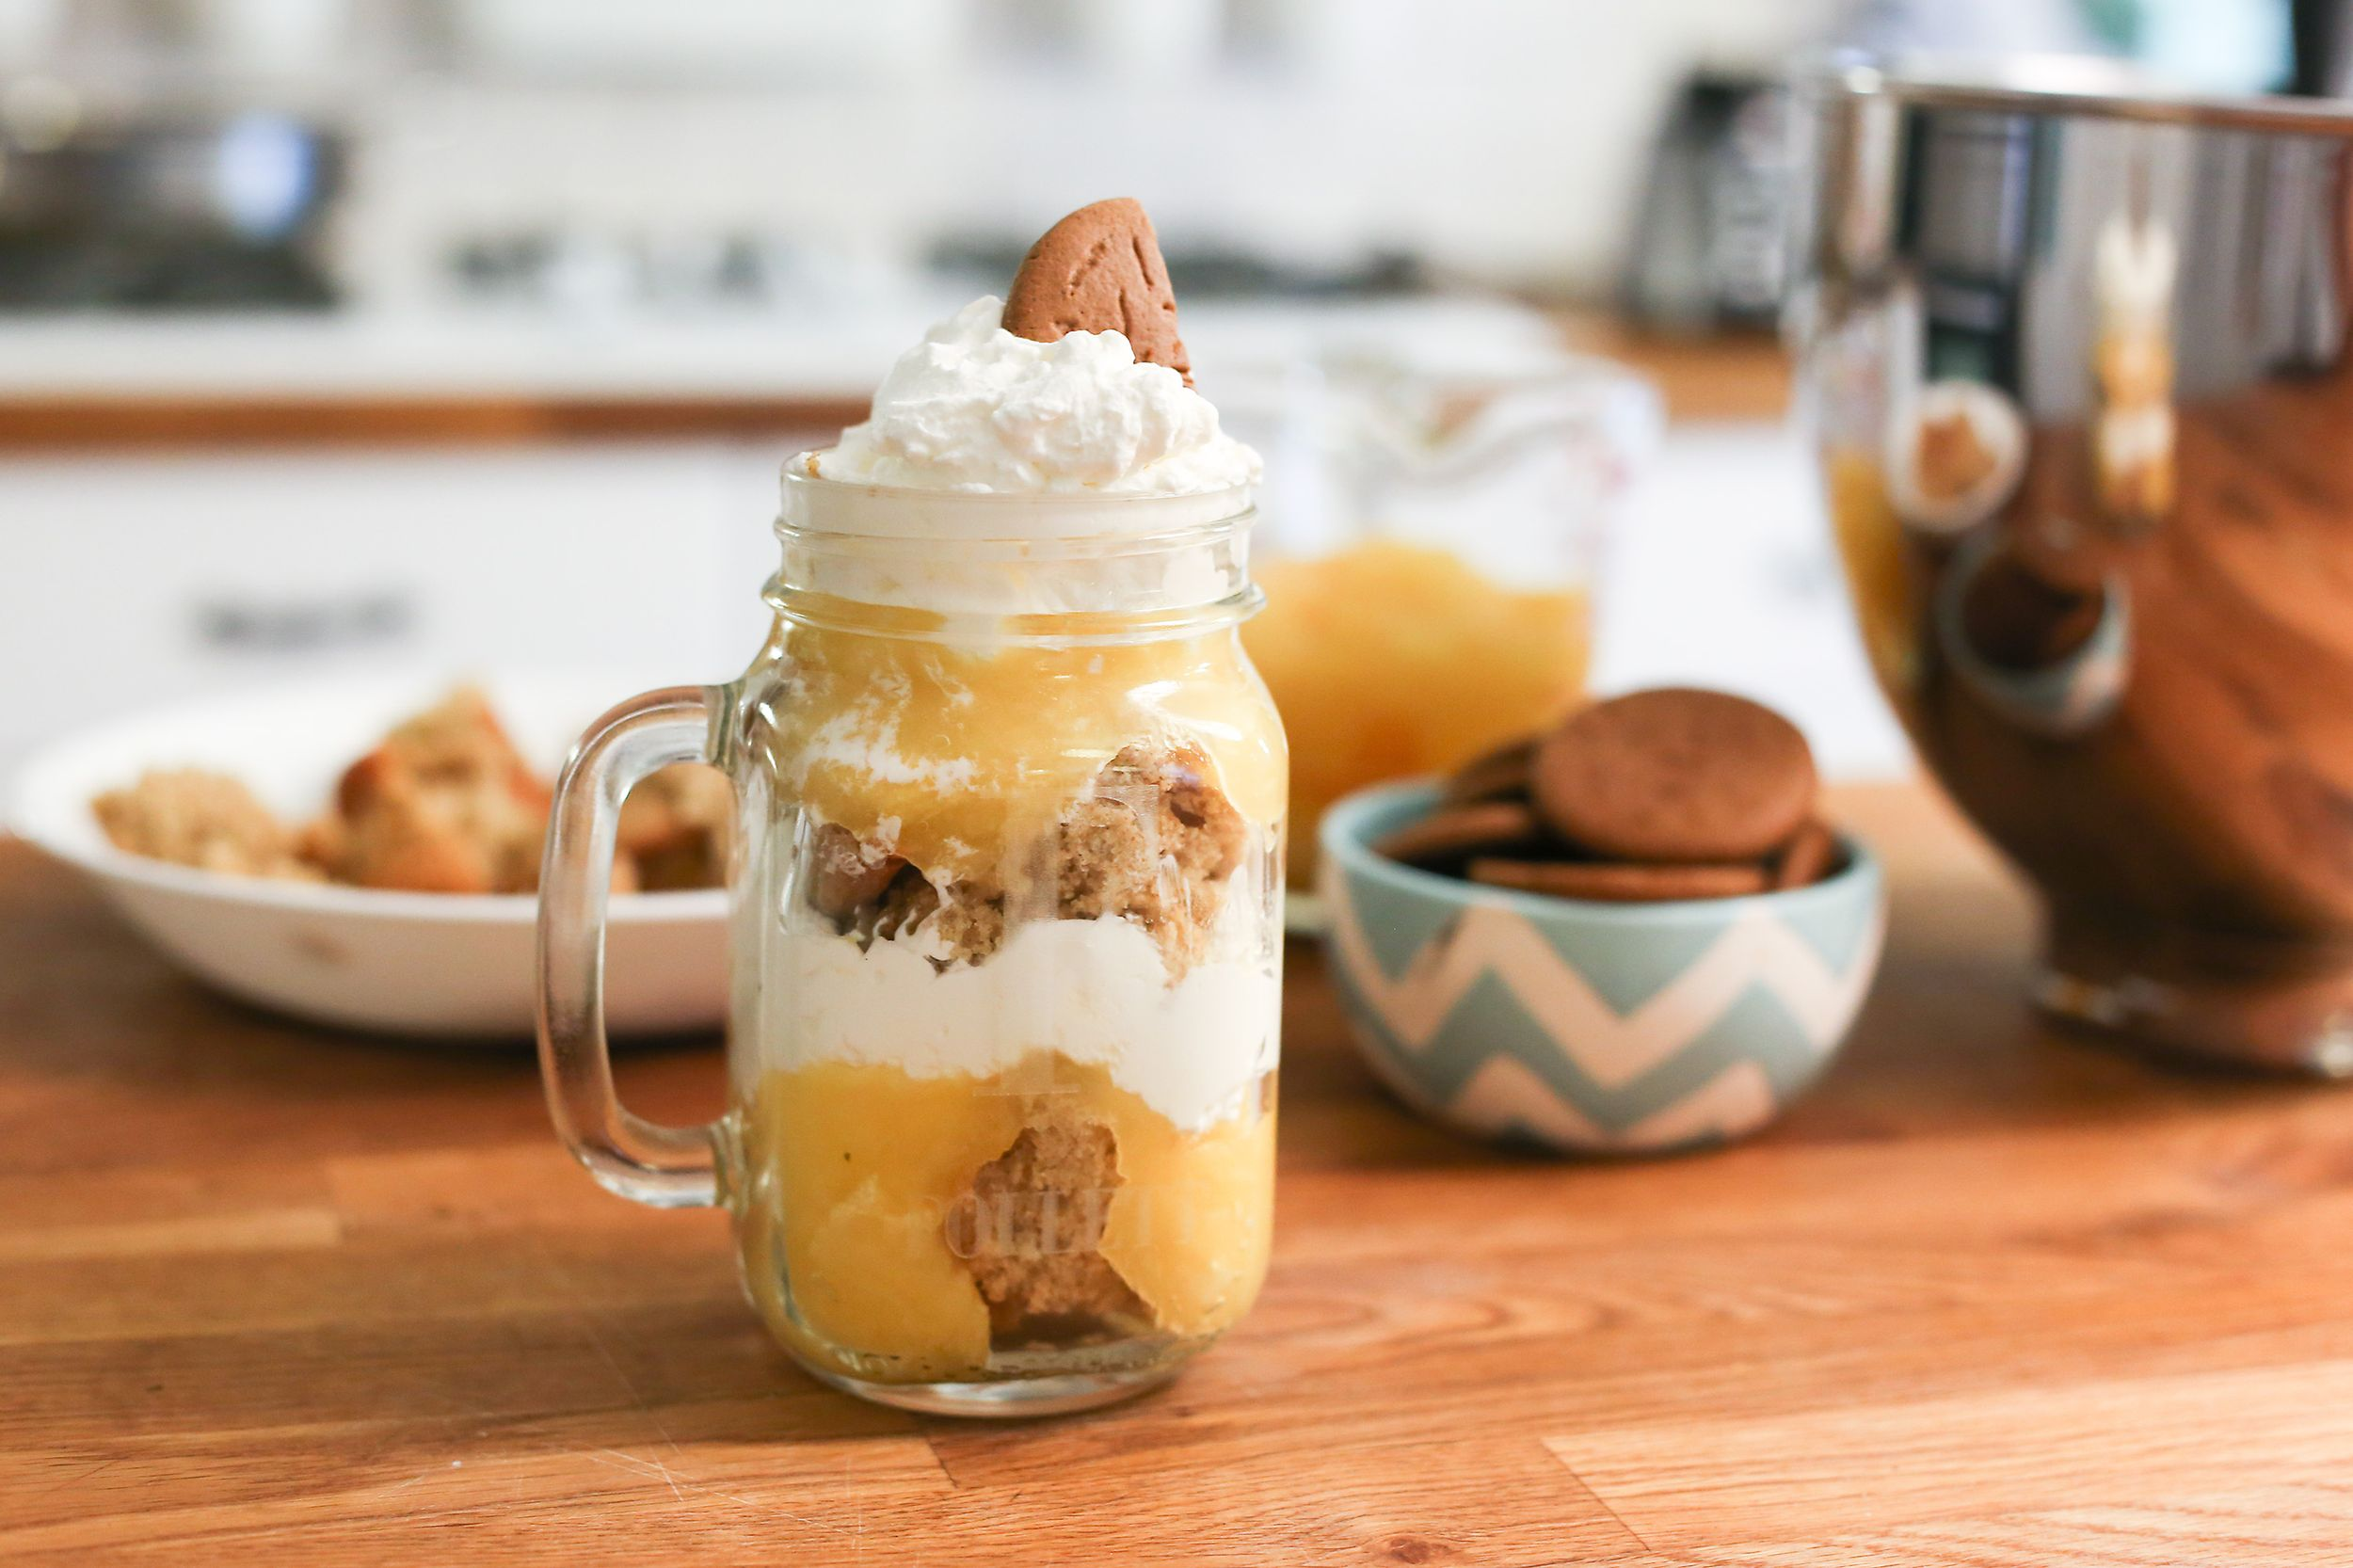 11 easy and delicious mason jar dessert recipes - Reviewed ...